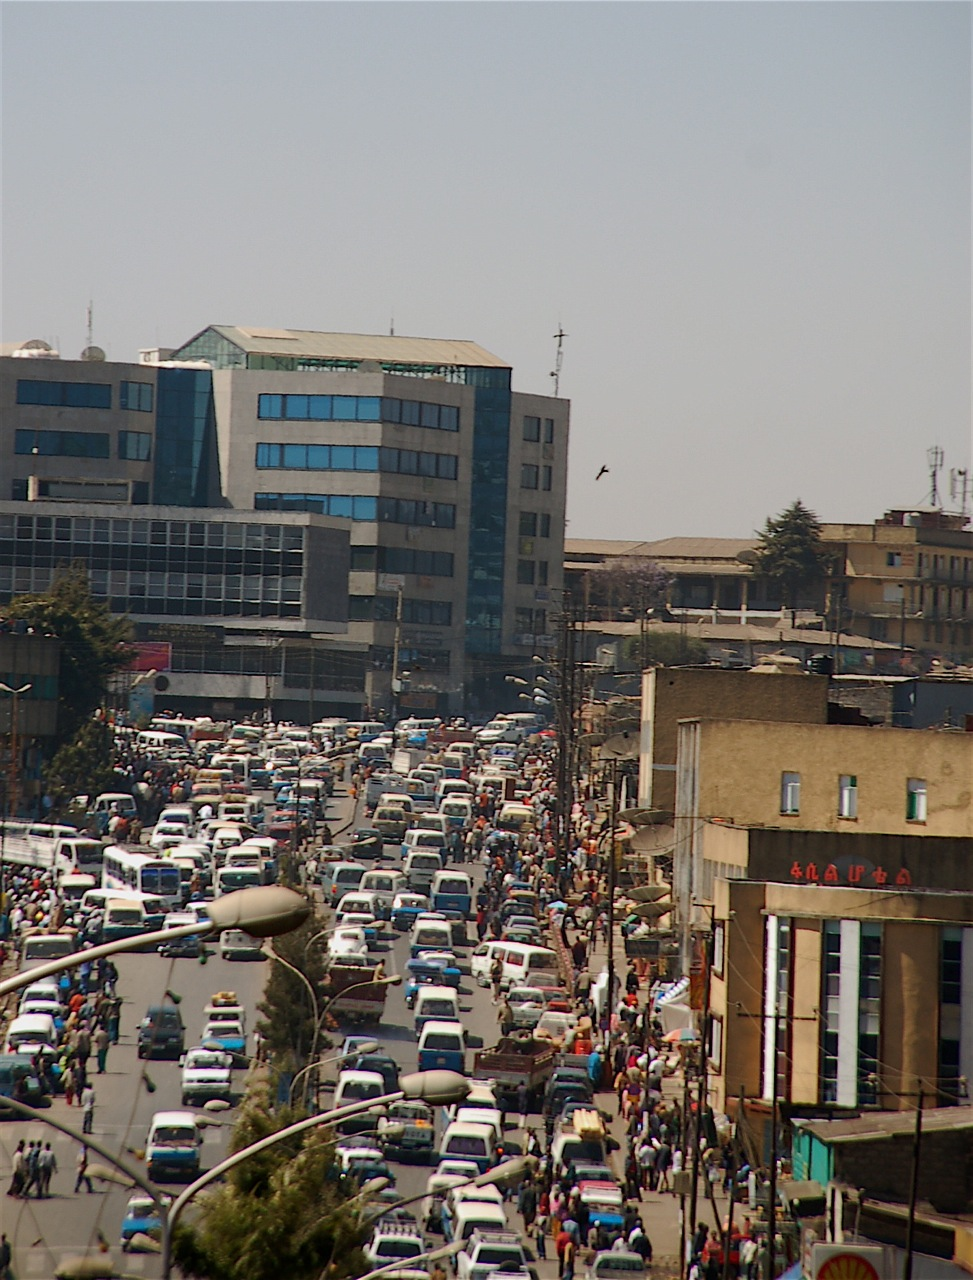 Image   Addis Ababa, Nikos Papatakis, Creative Commons